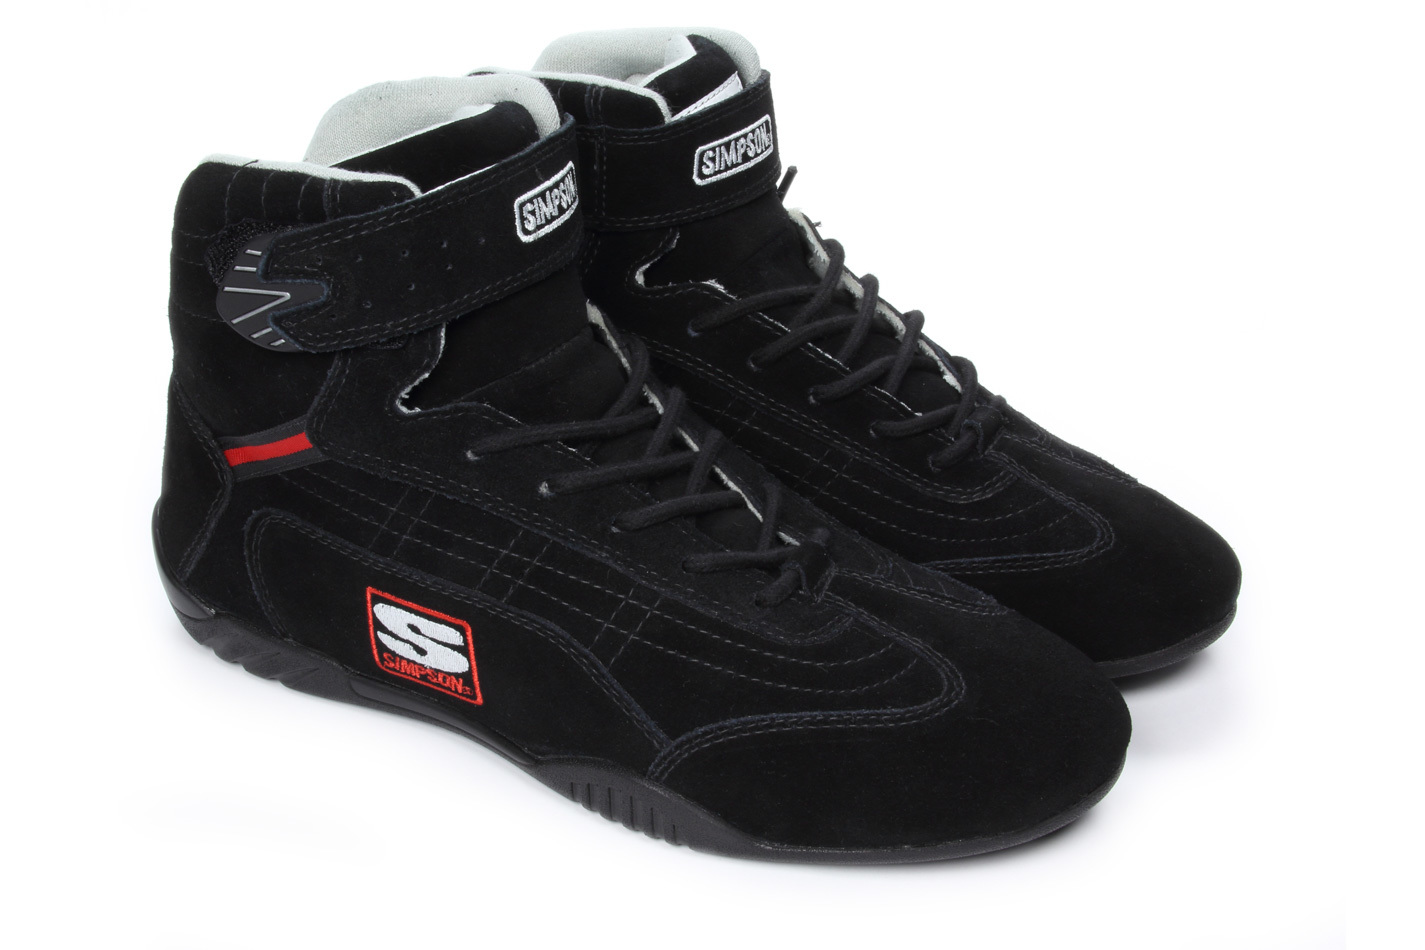 Simpson AD500BK Shoe, Adrenaline, Driving, High-Top, SFI 3.3/5, Suede Outer, Nomex Inner, Black, Size 5, Pair